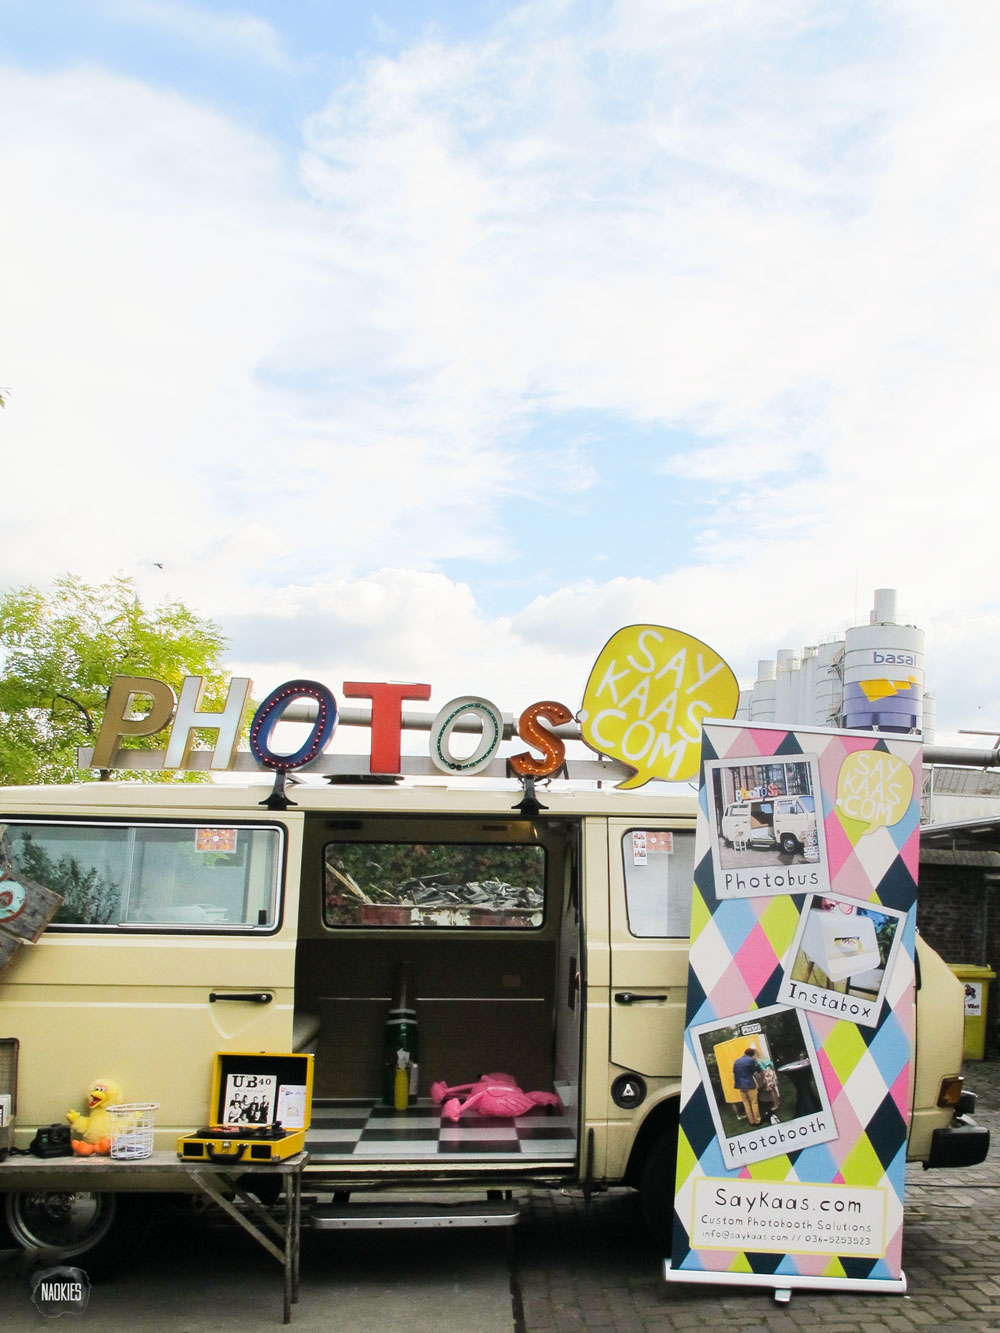 engaged_fair_delft_2016_photography_volkswagen_bus